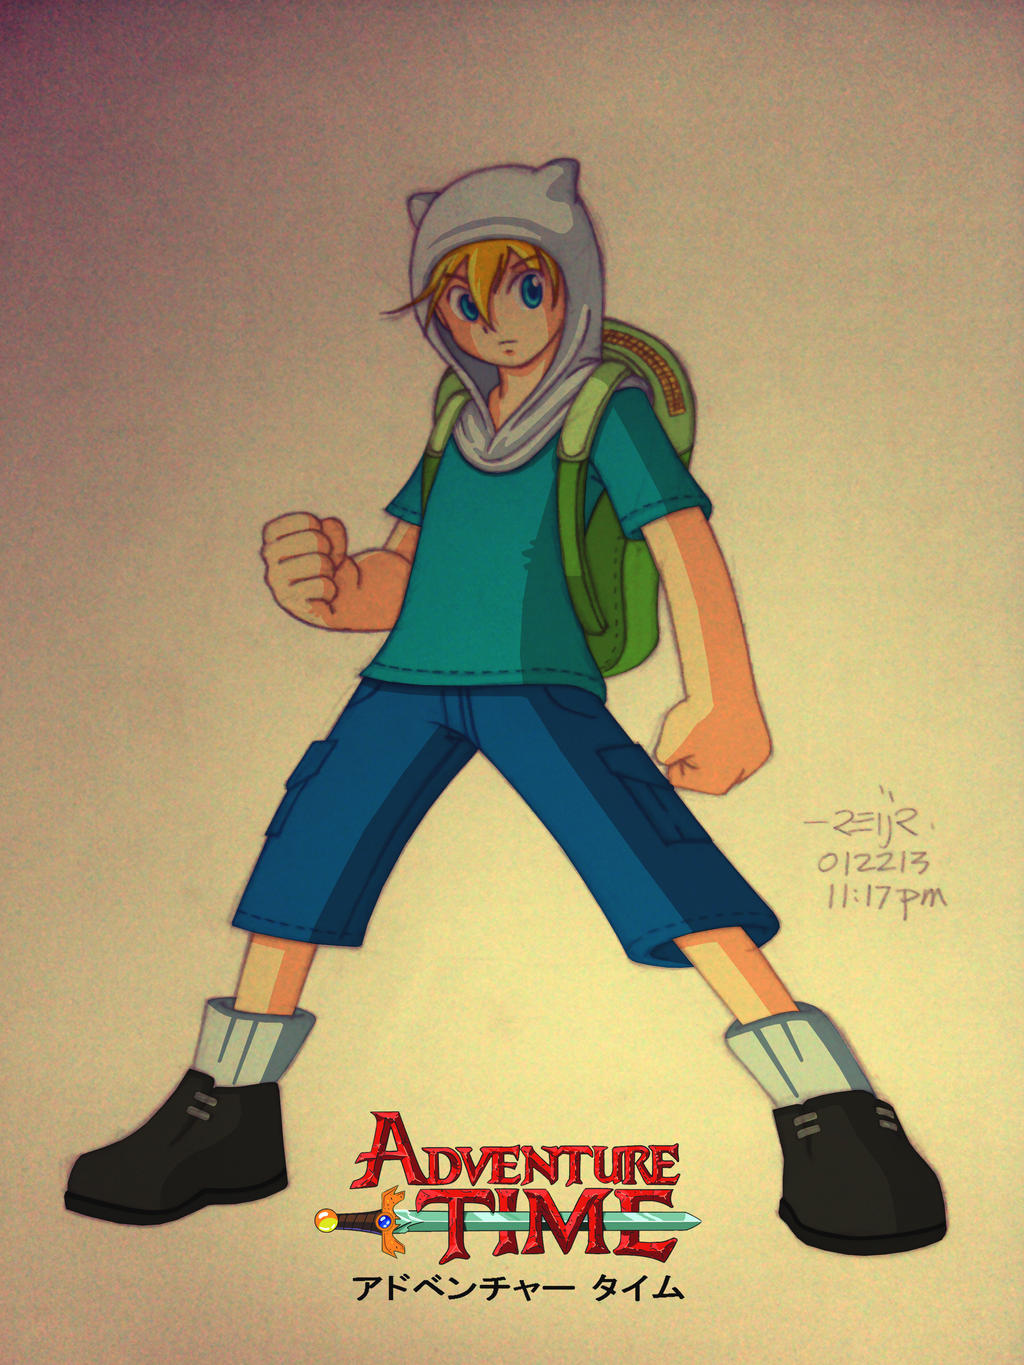 adventure time: finn by reijr on DeviantArt